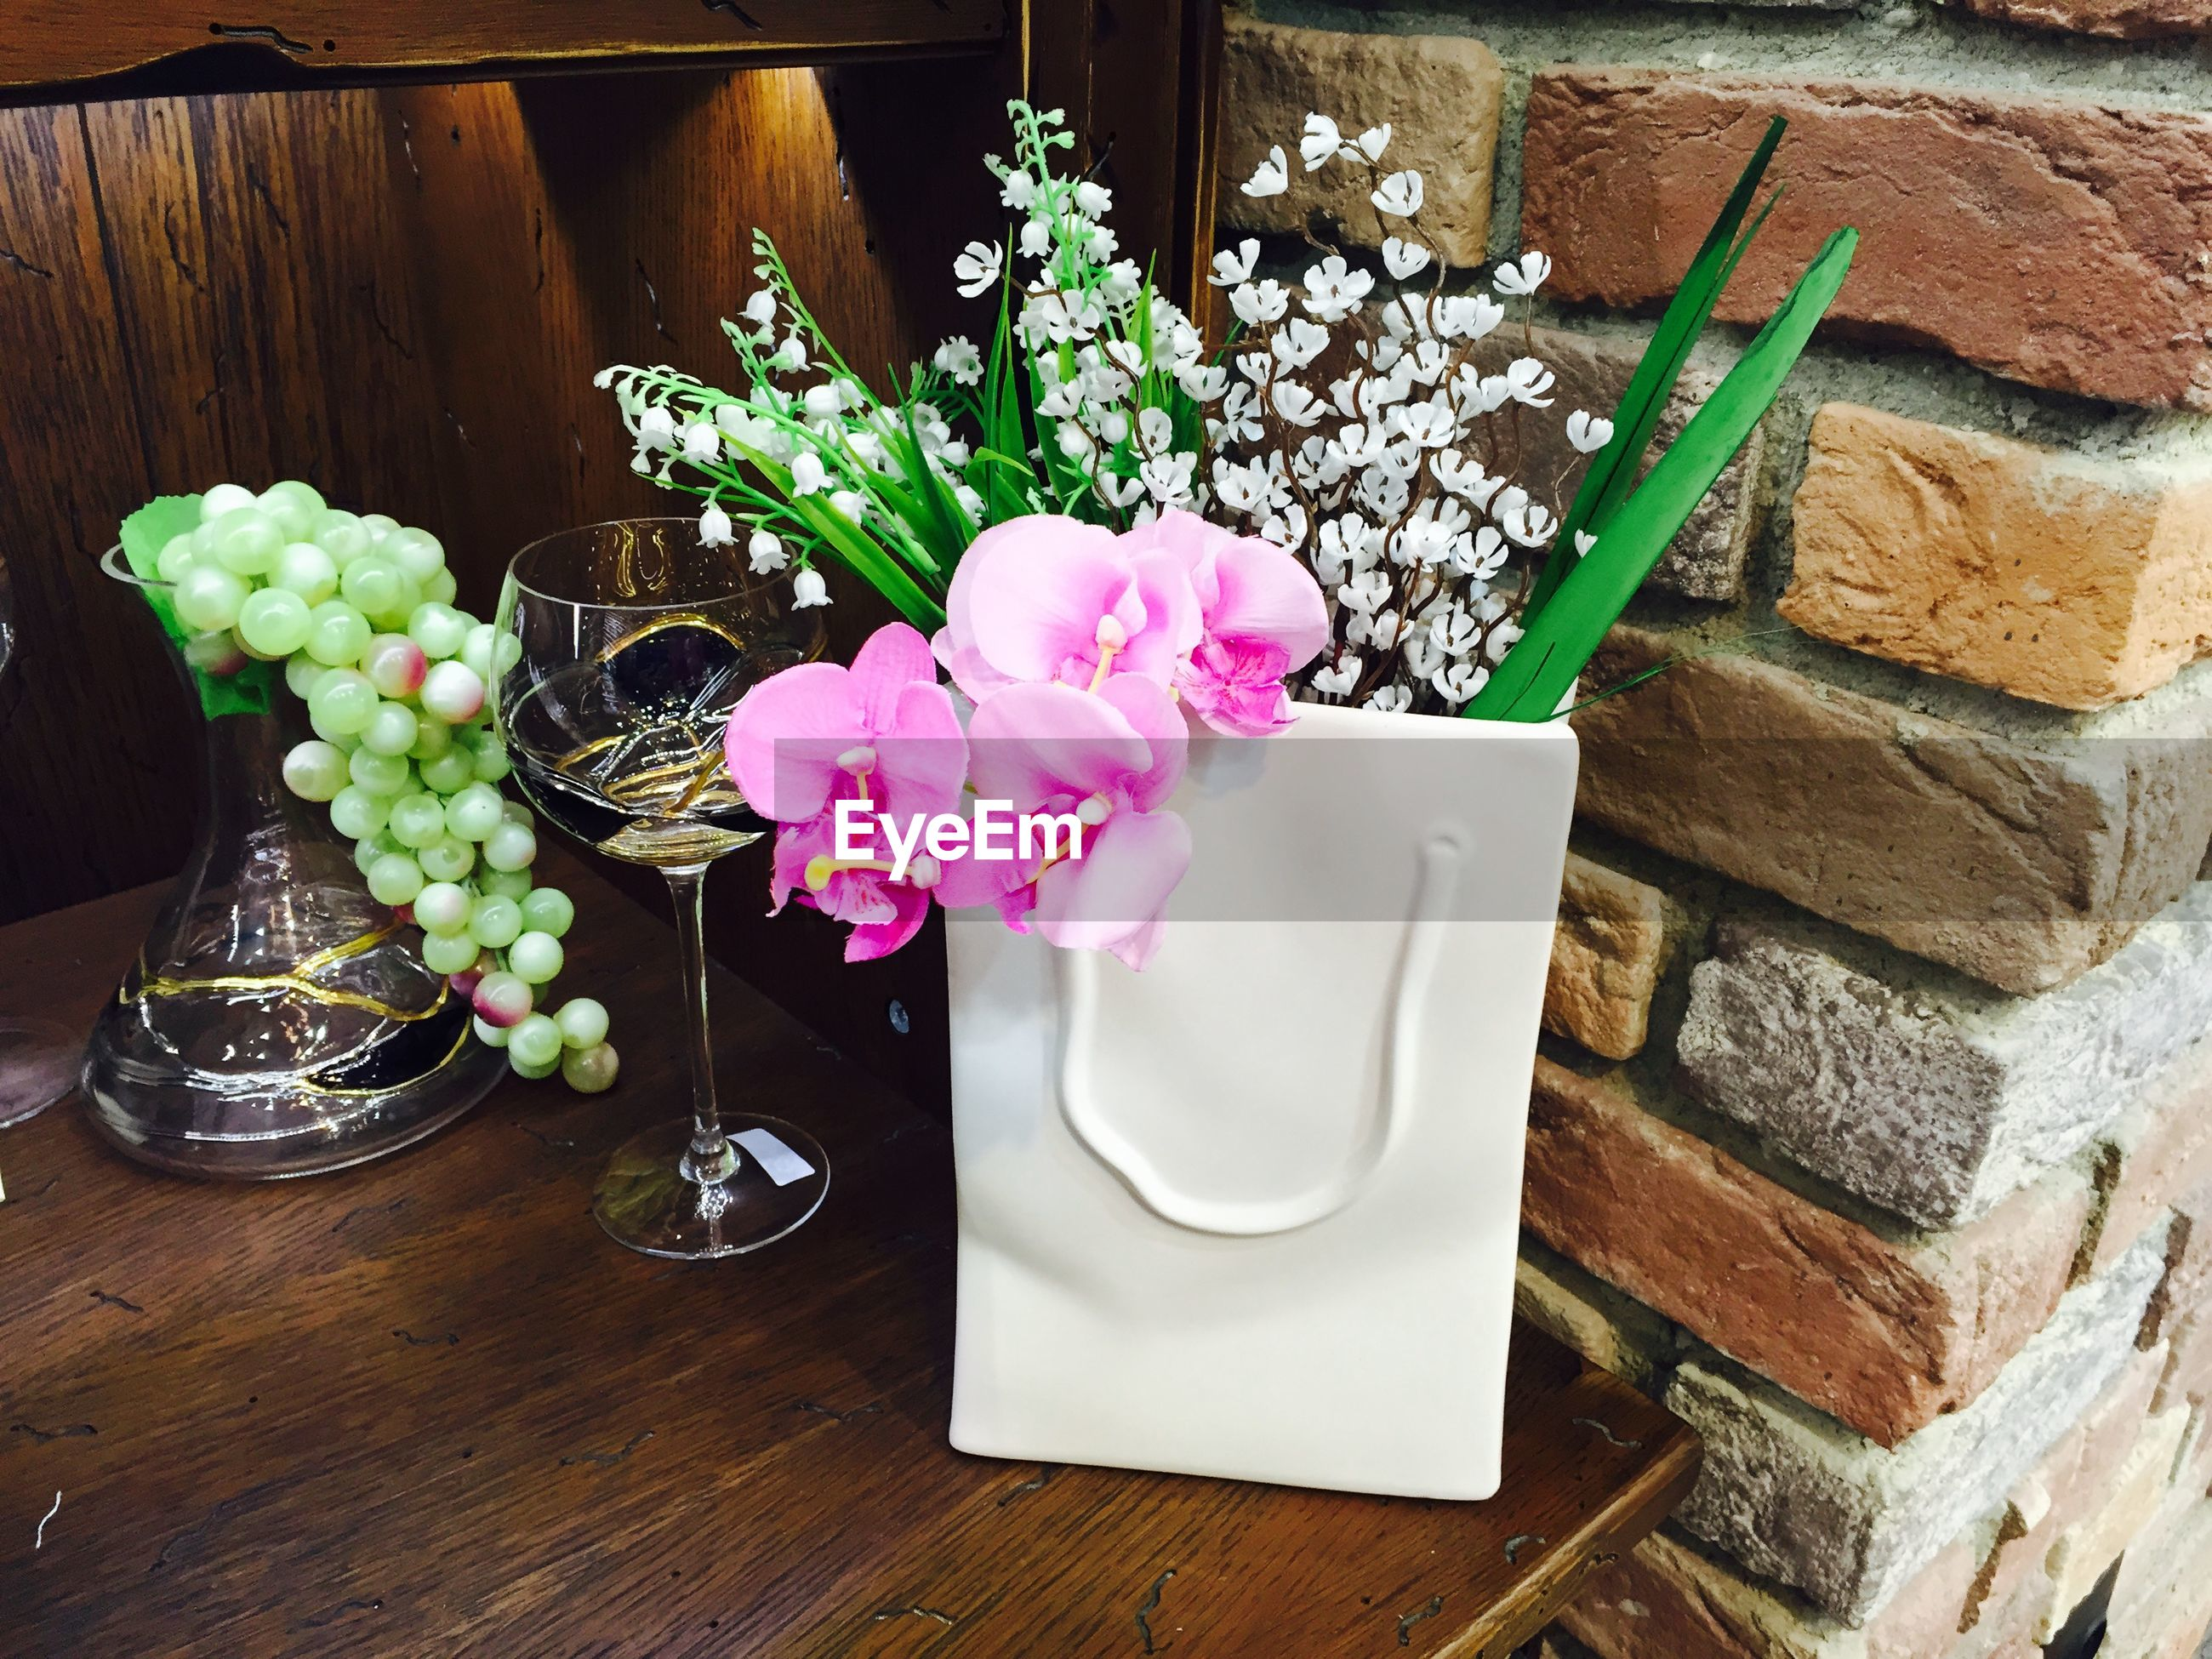 Flower vase and wineglass on table